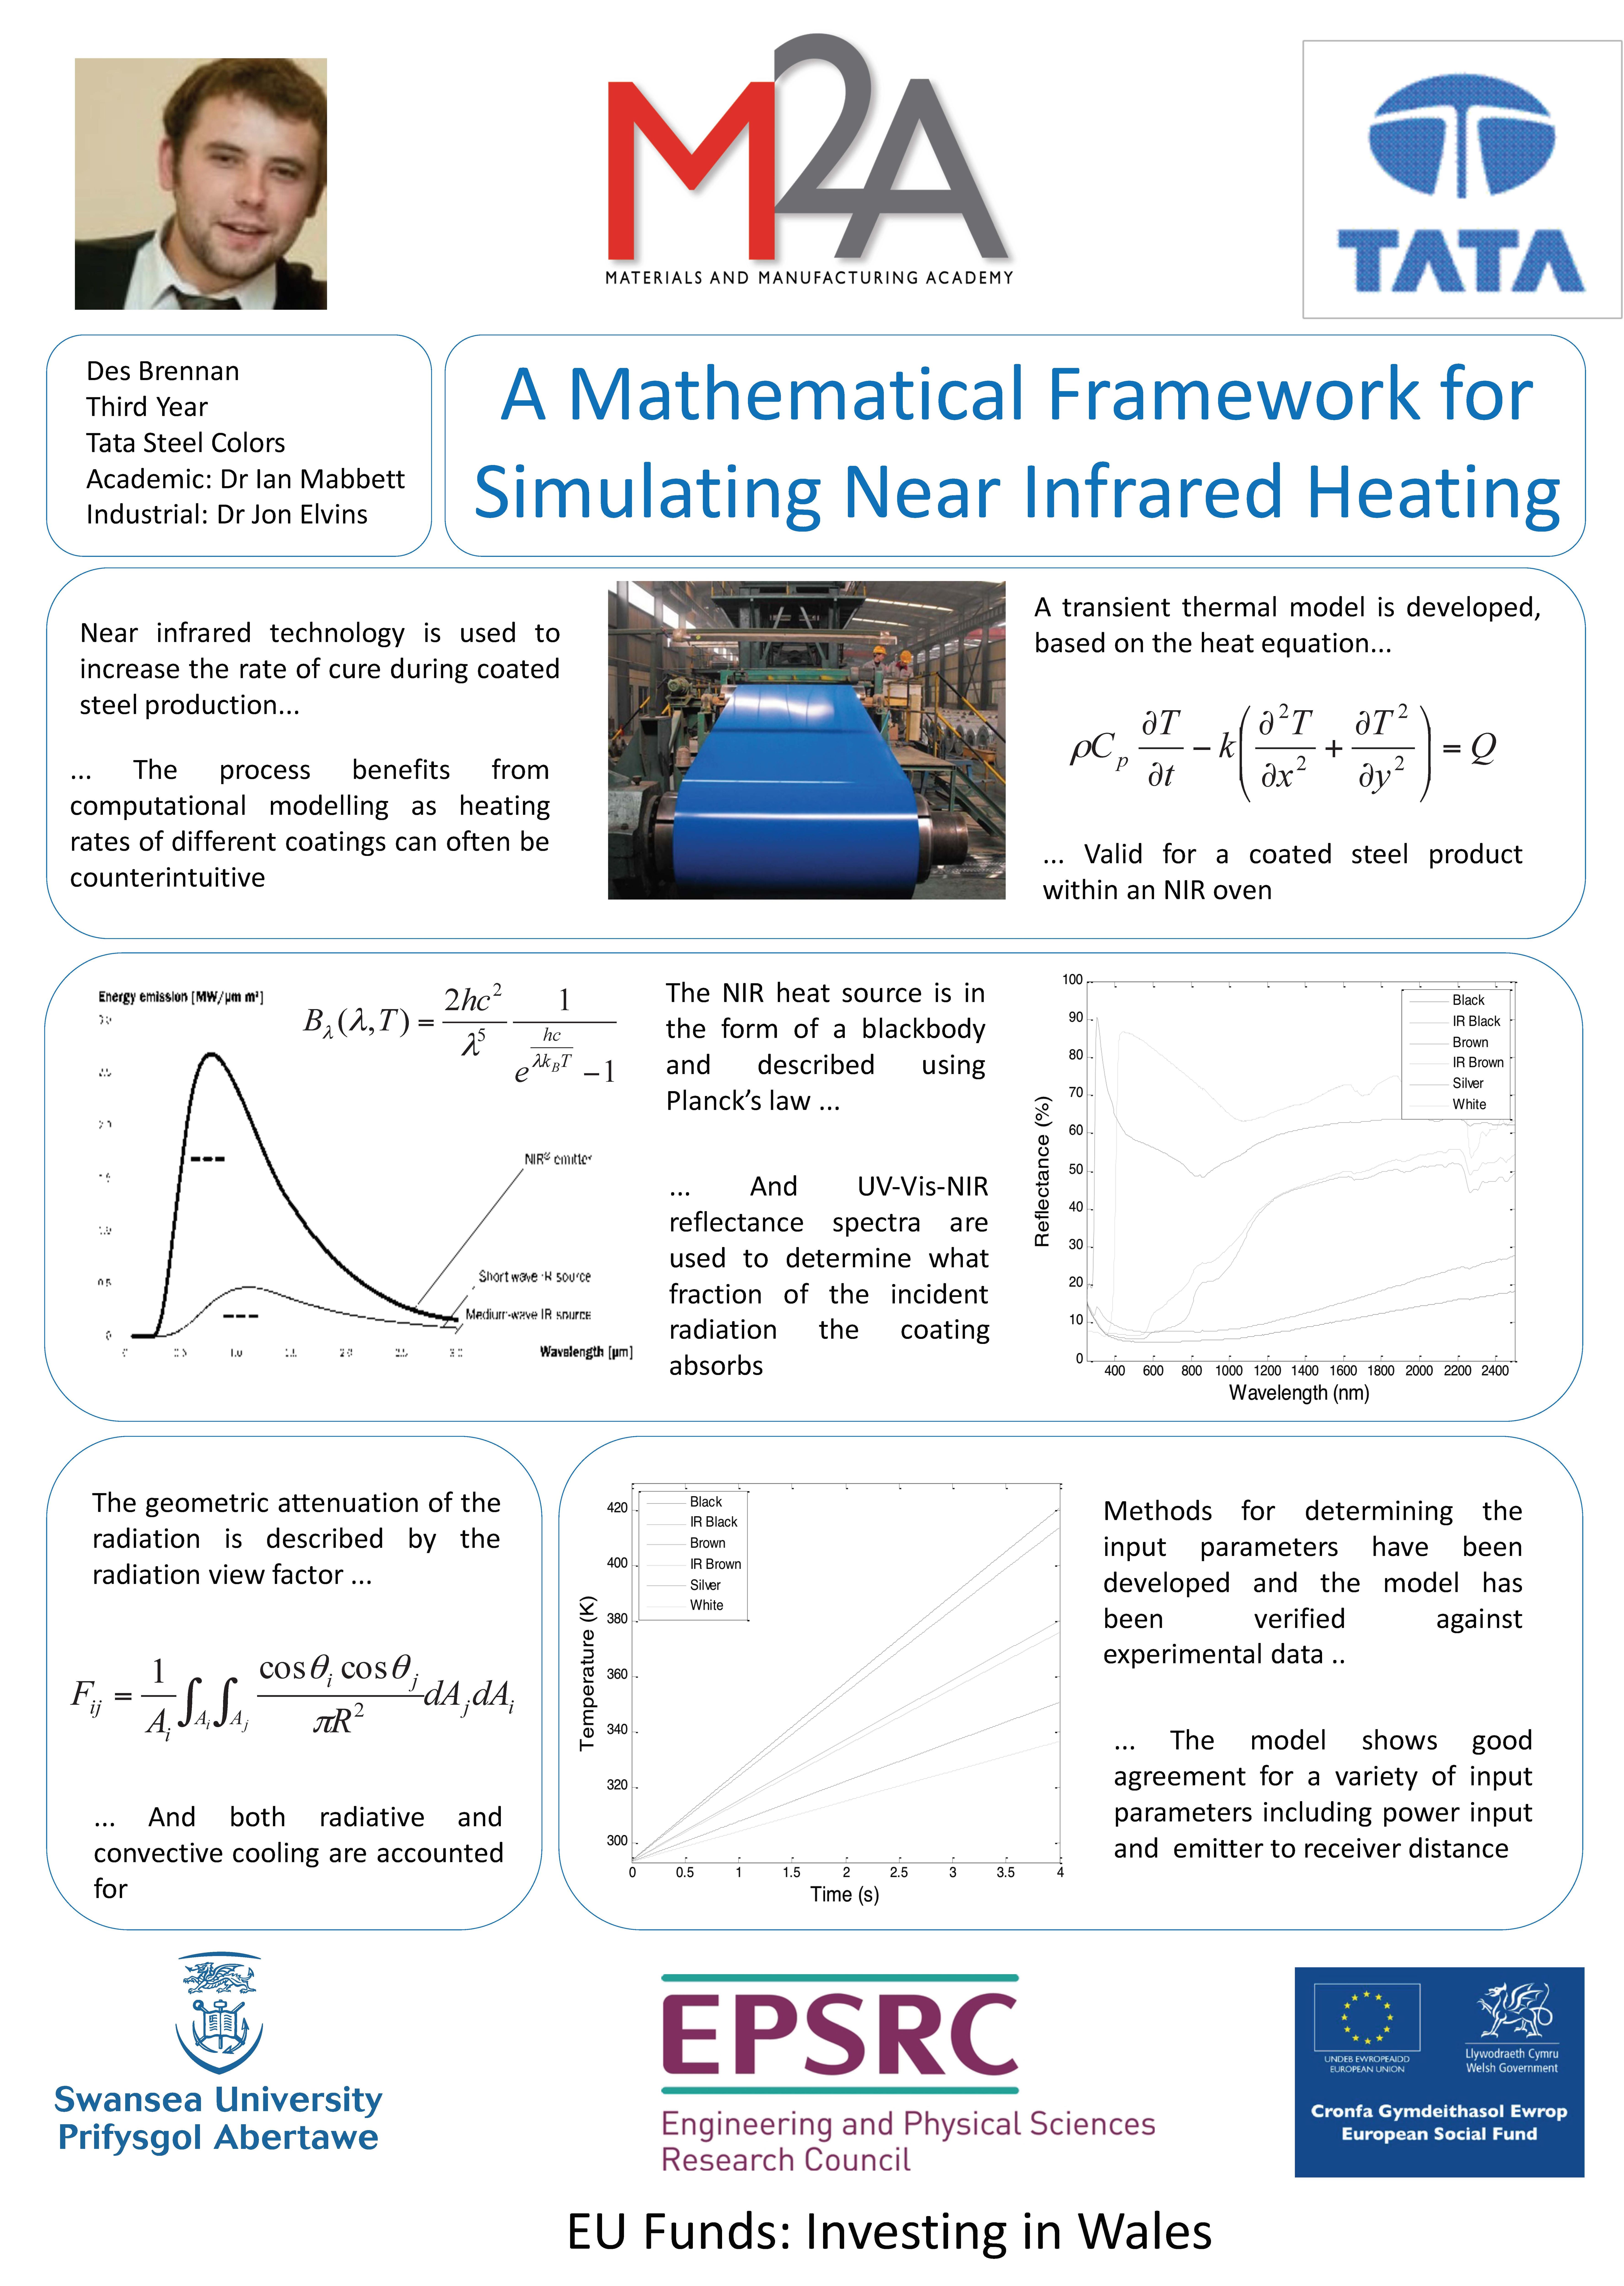 A Mathematical Framework for Simulating Near Infrared Heating